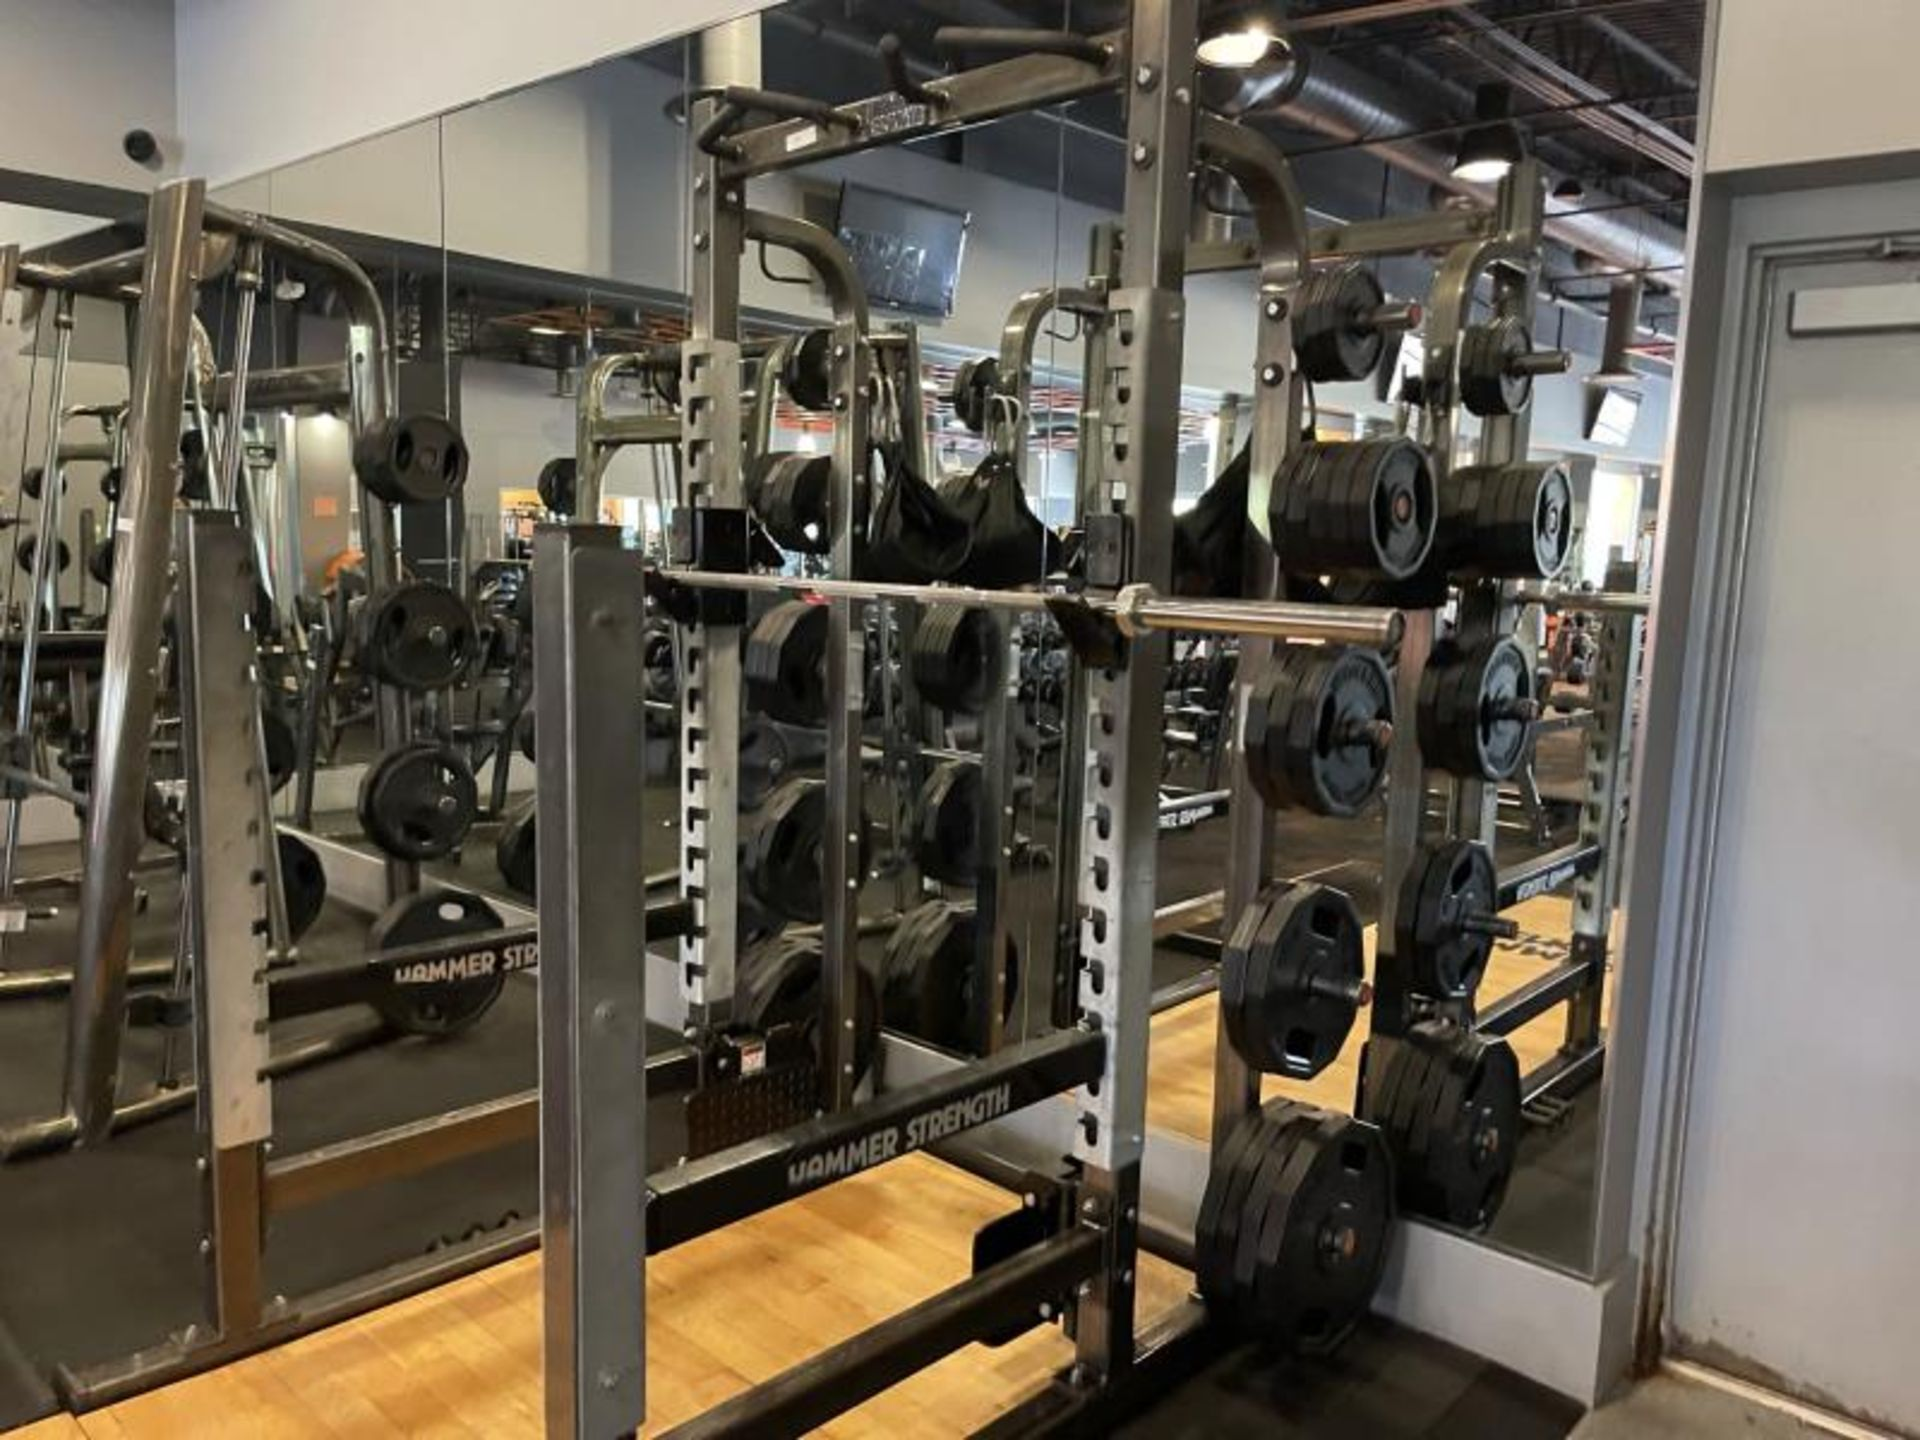 Hammer Strength with Wood Floor, Rack, Iron Grip Weight Plates M: HDMR8/B01 - Image 3 of 7